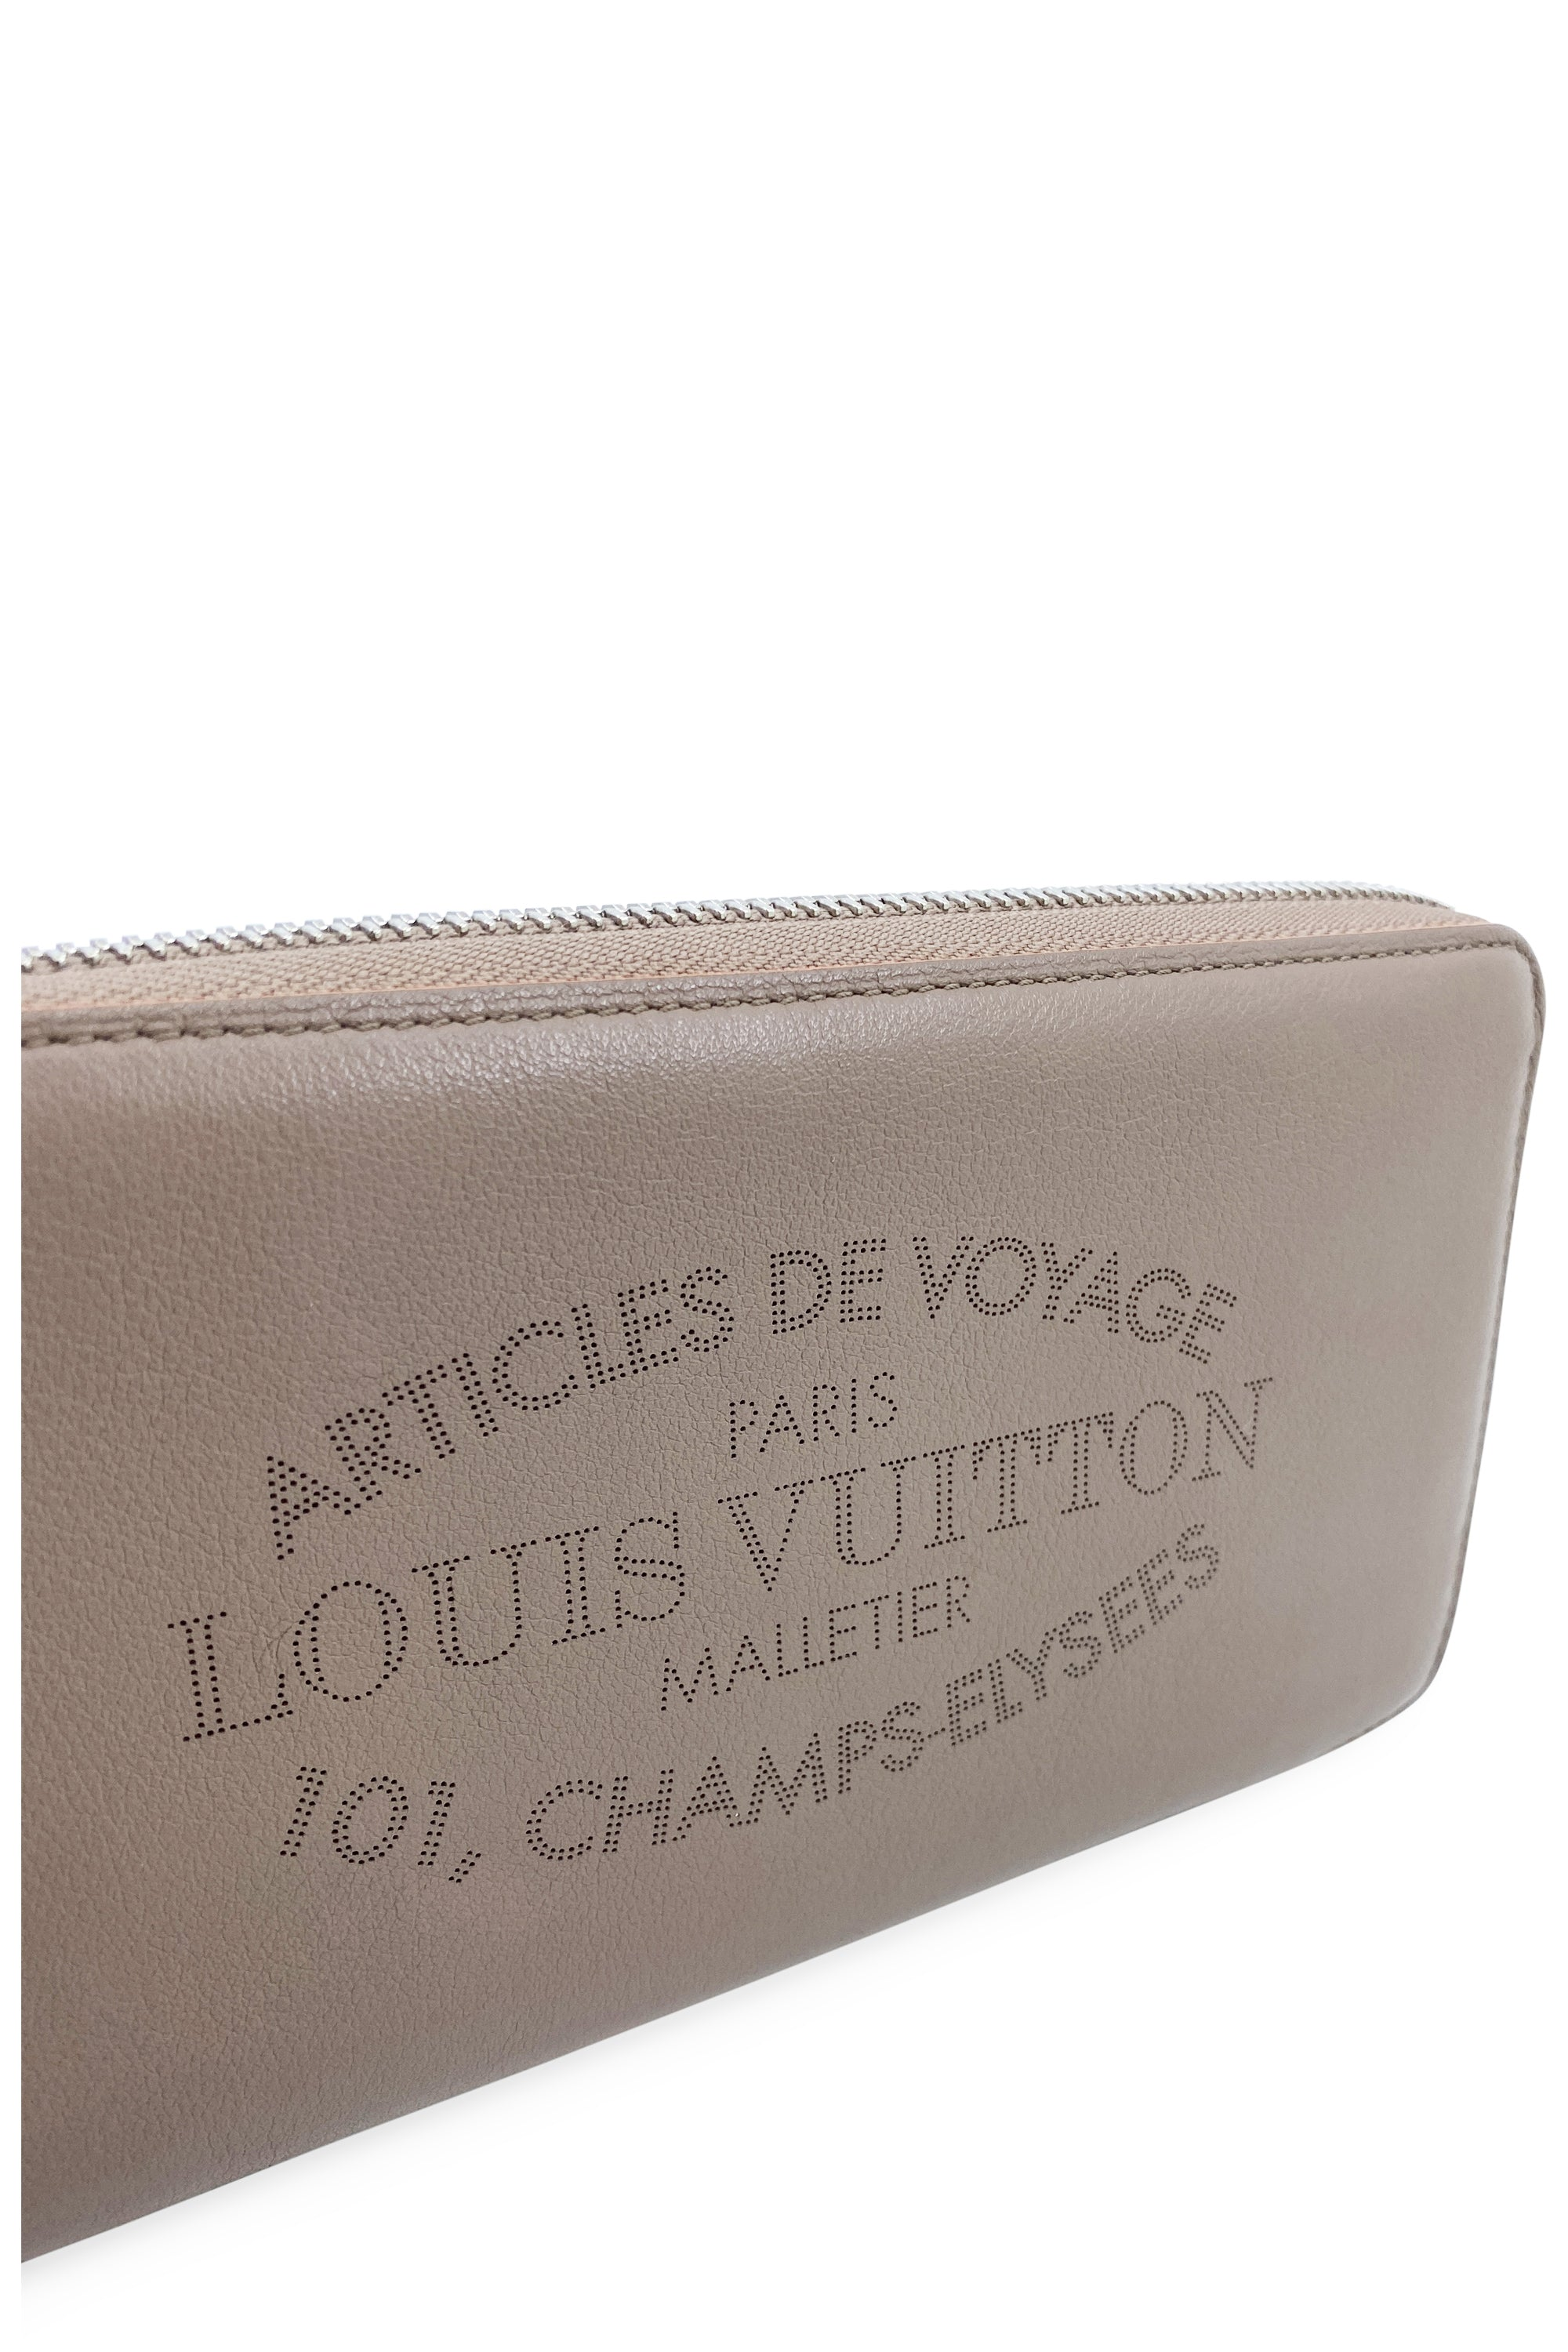 LOUIS VUITTON Continental Wallet